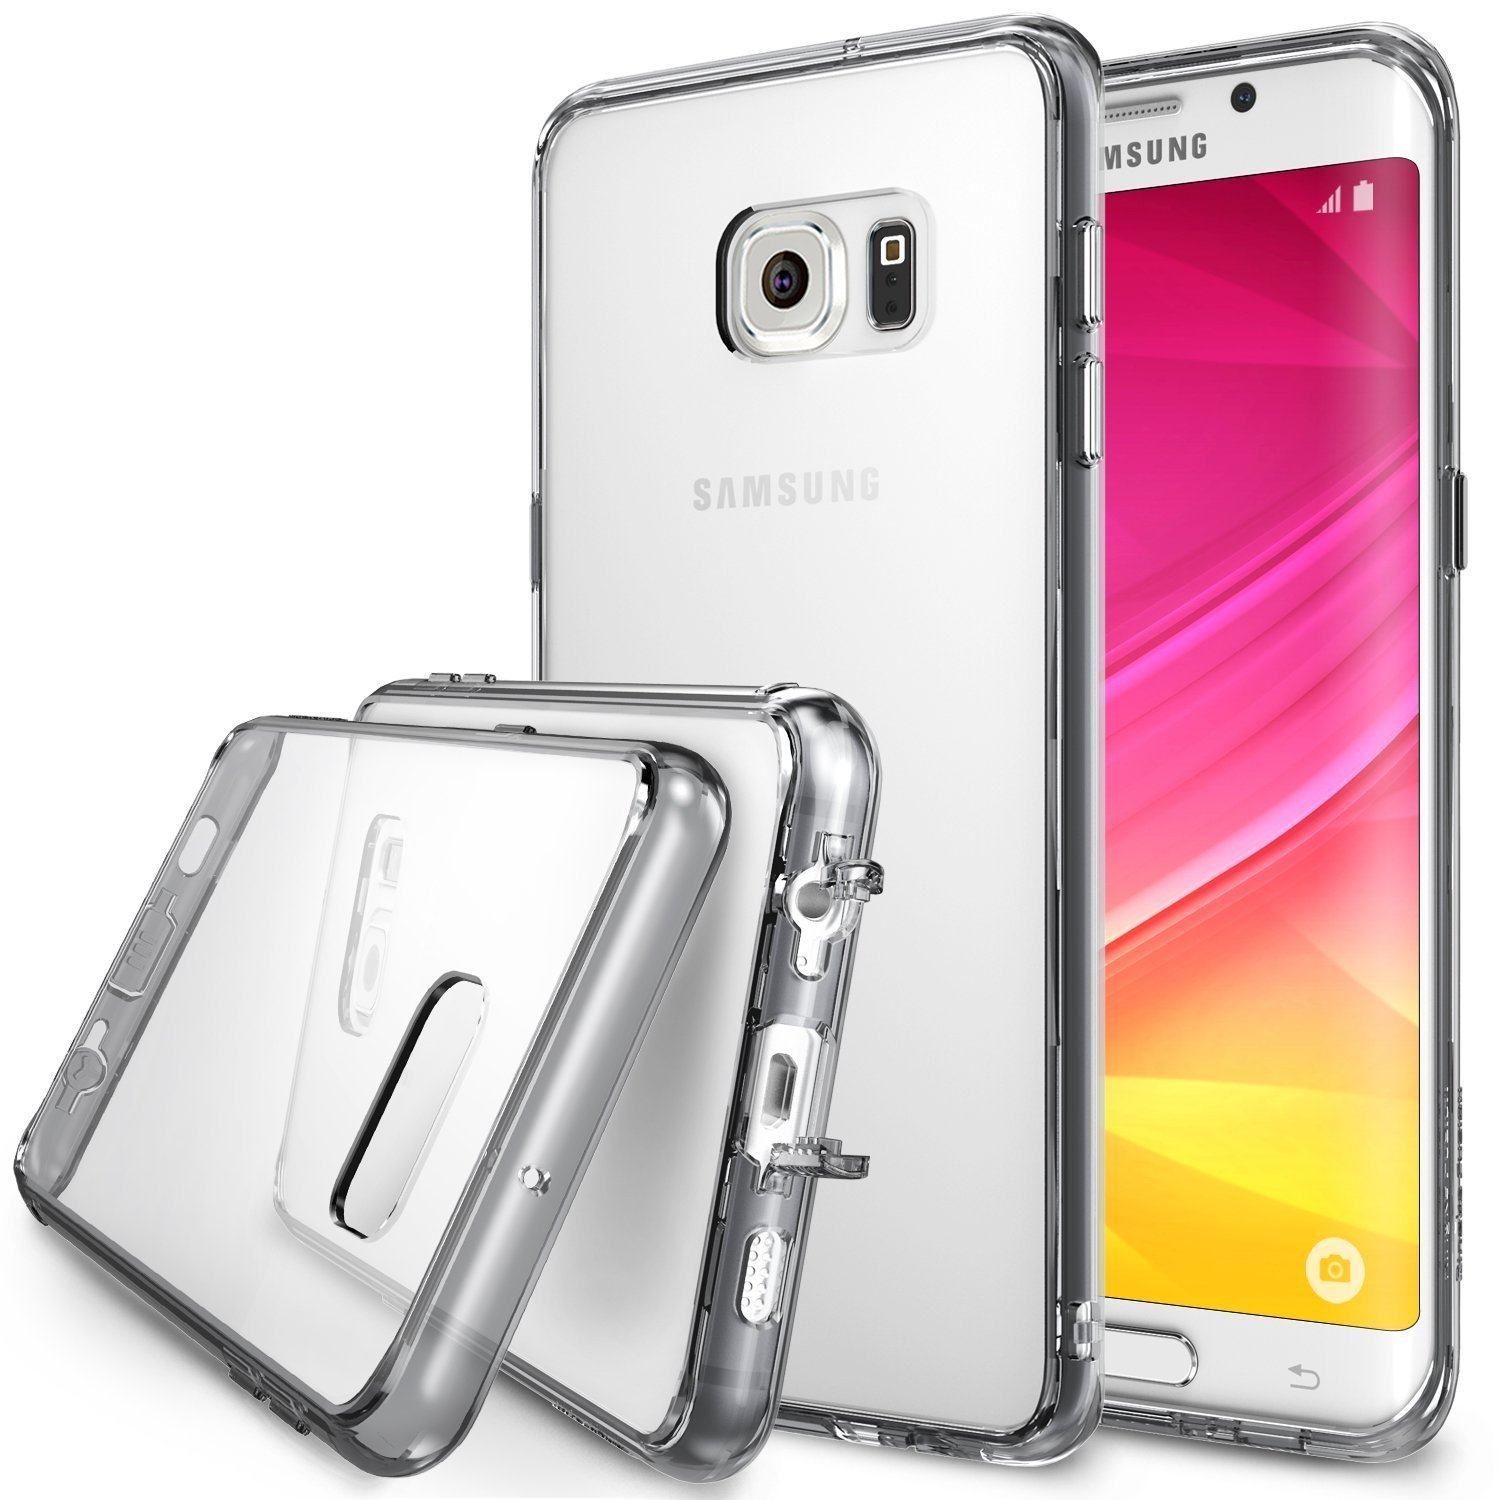 Samsung Galaxy S6 Edge Plus, Ringke [Smoke Black] FUSION Series Shock Absorption Bumper Premium Hybrid Hard Case